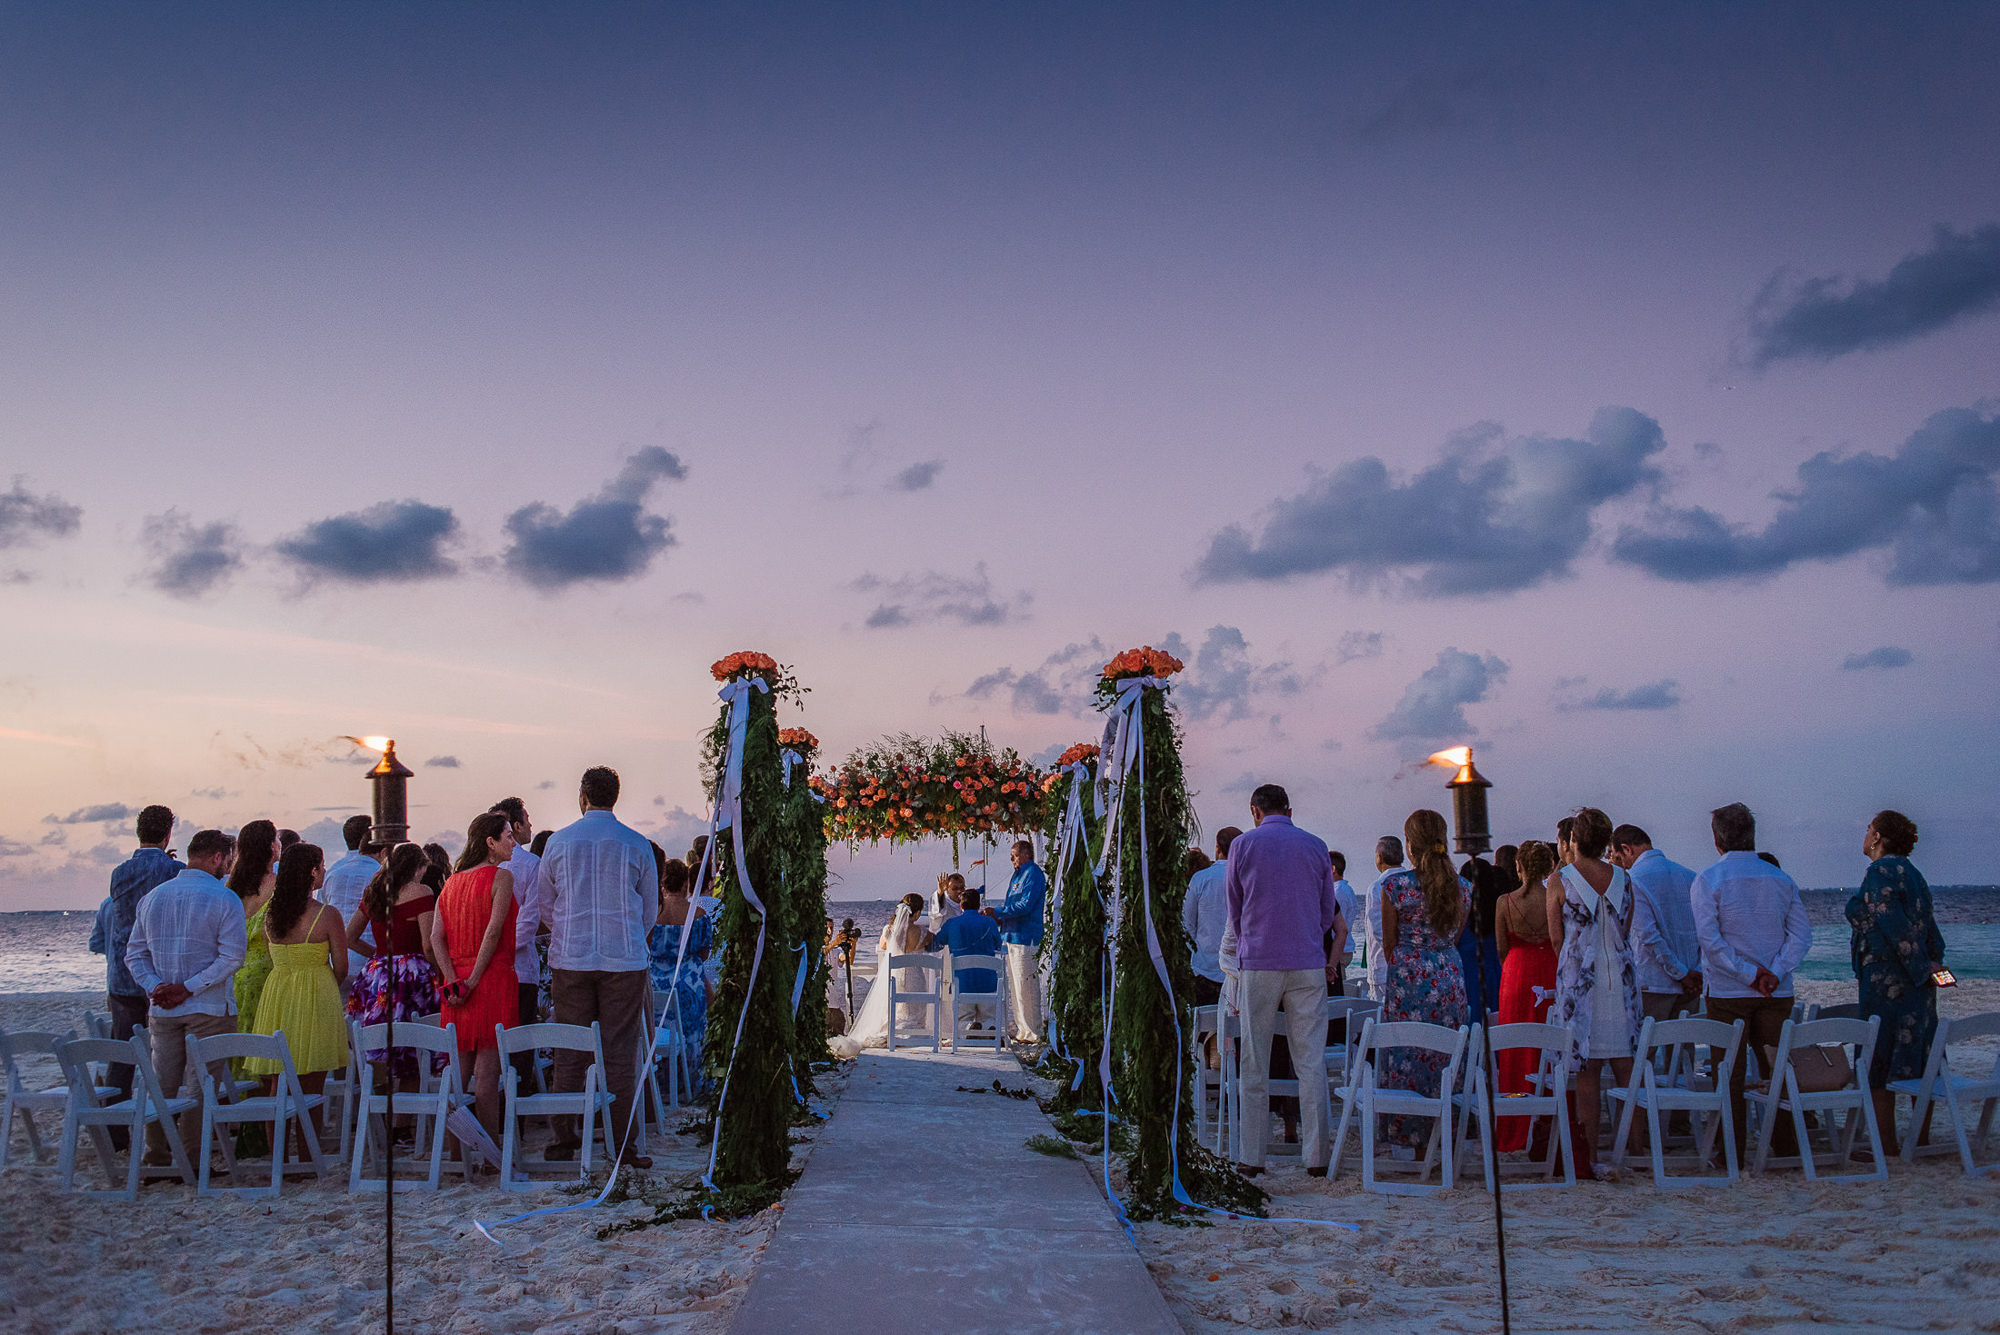 Wedding ceremony on beach at dusk, by Citlalli Rico